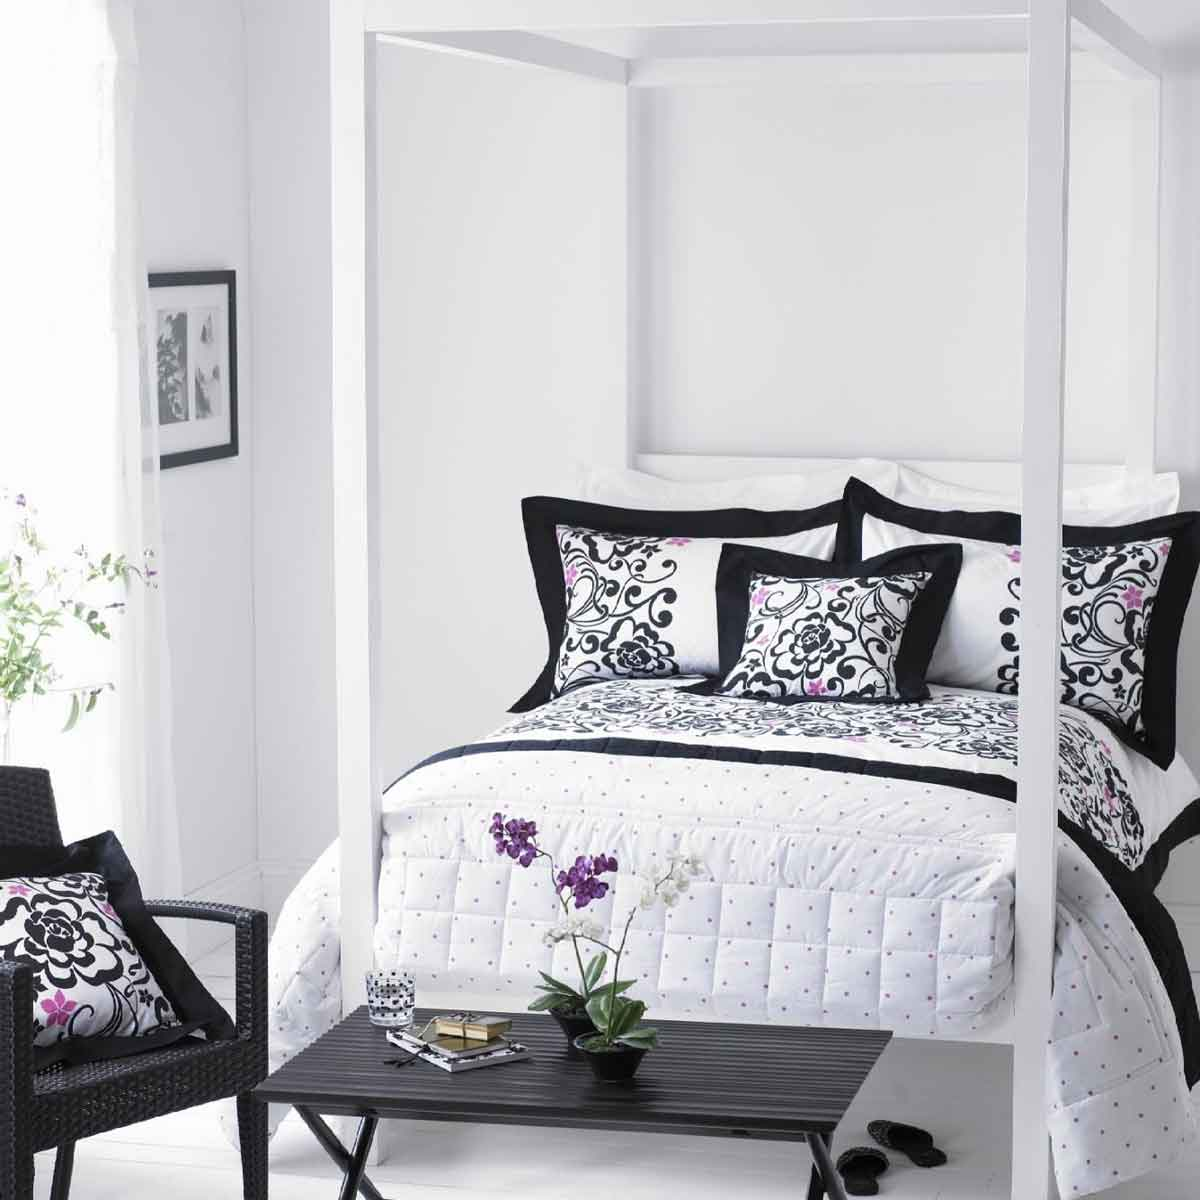 Black and White Bedroom Ideas 1200 x 1200